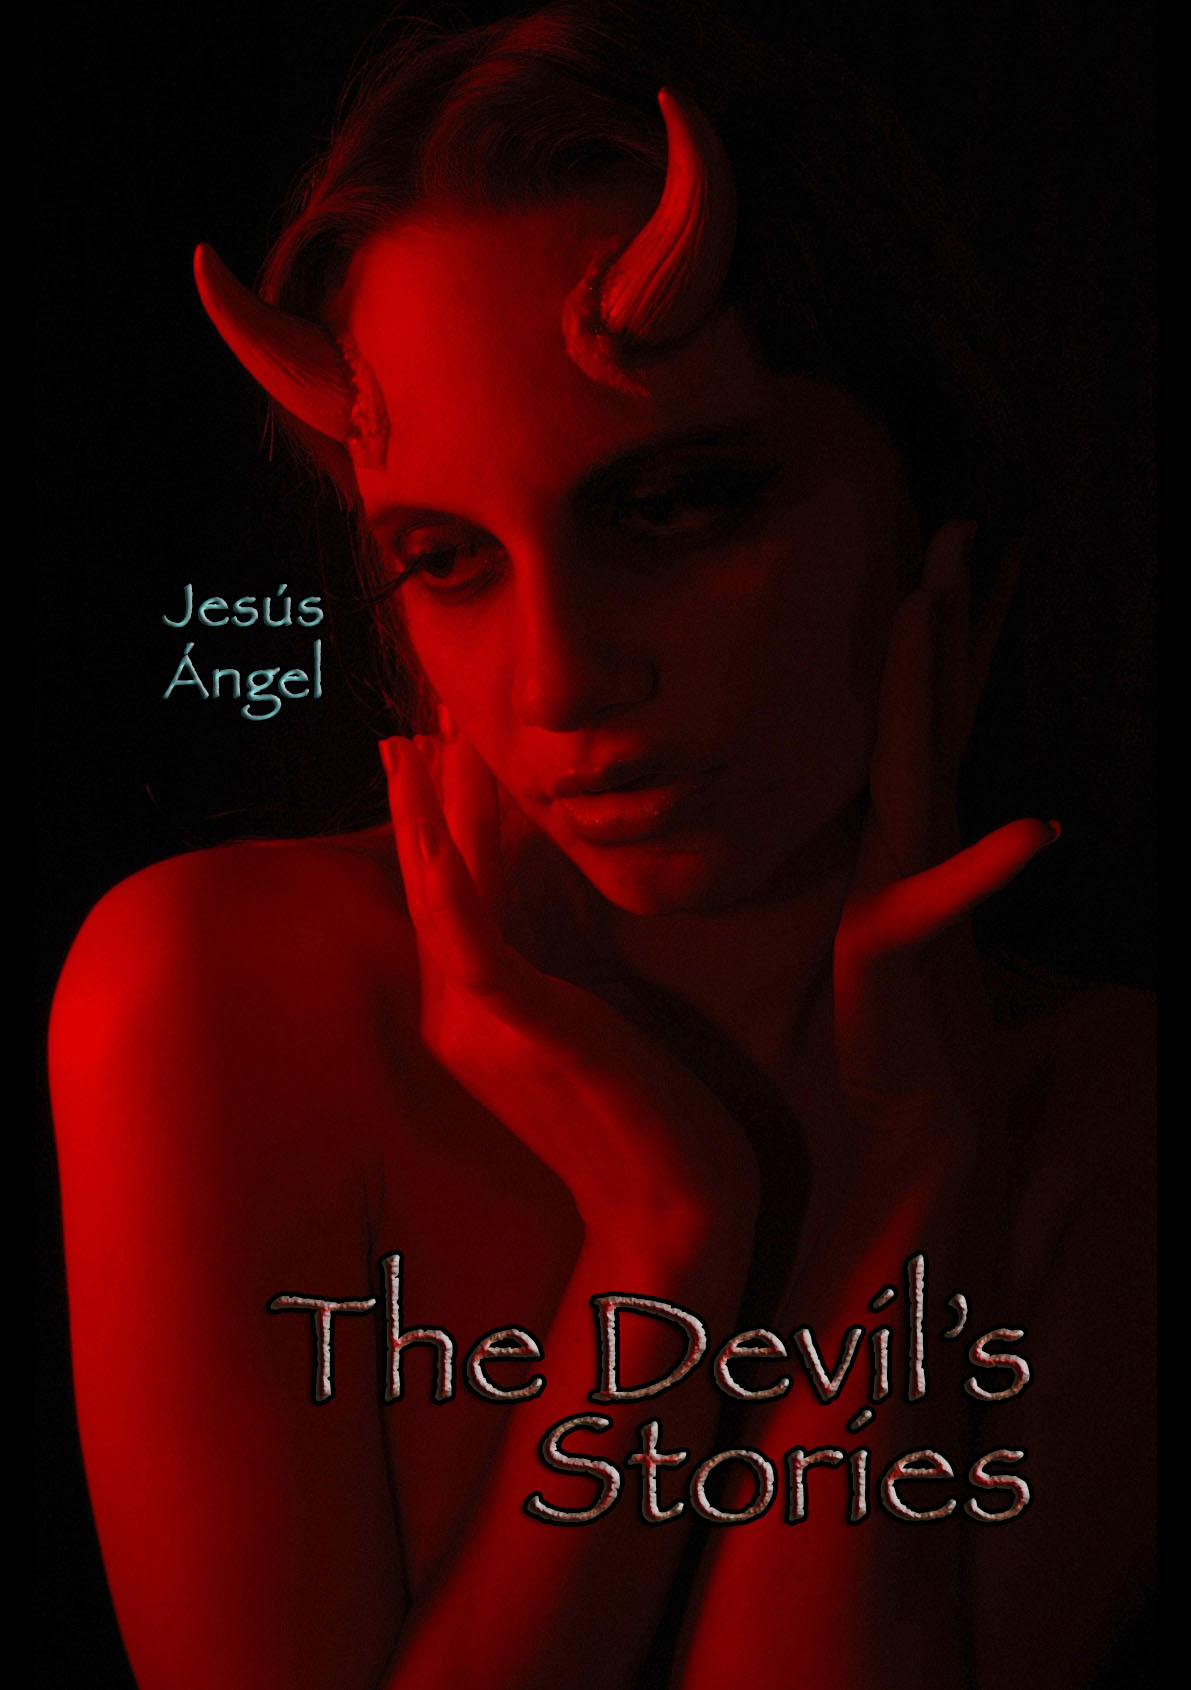 The Devil is the main character in this novel, yet to be translated.